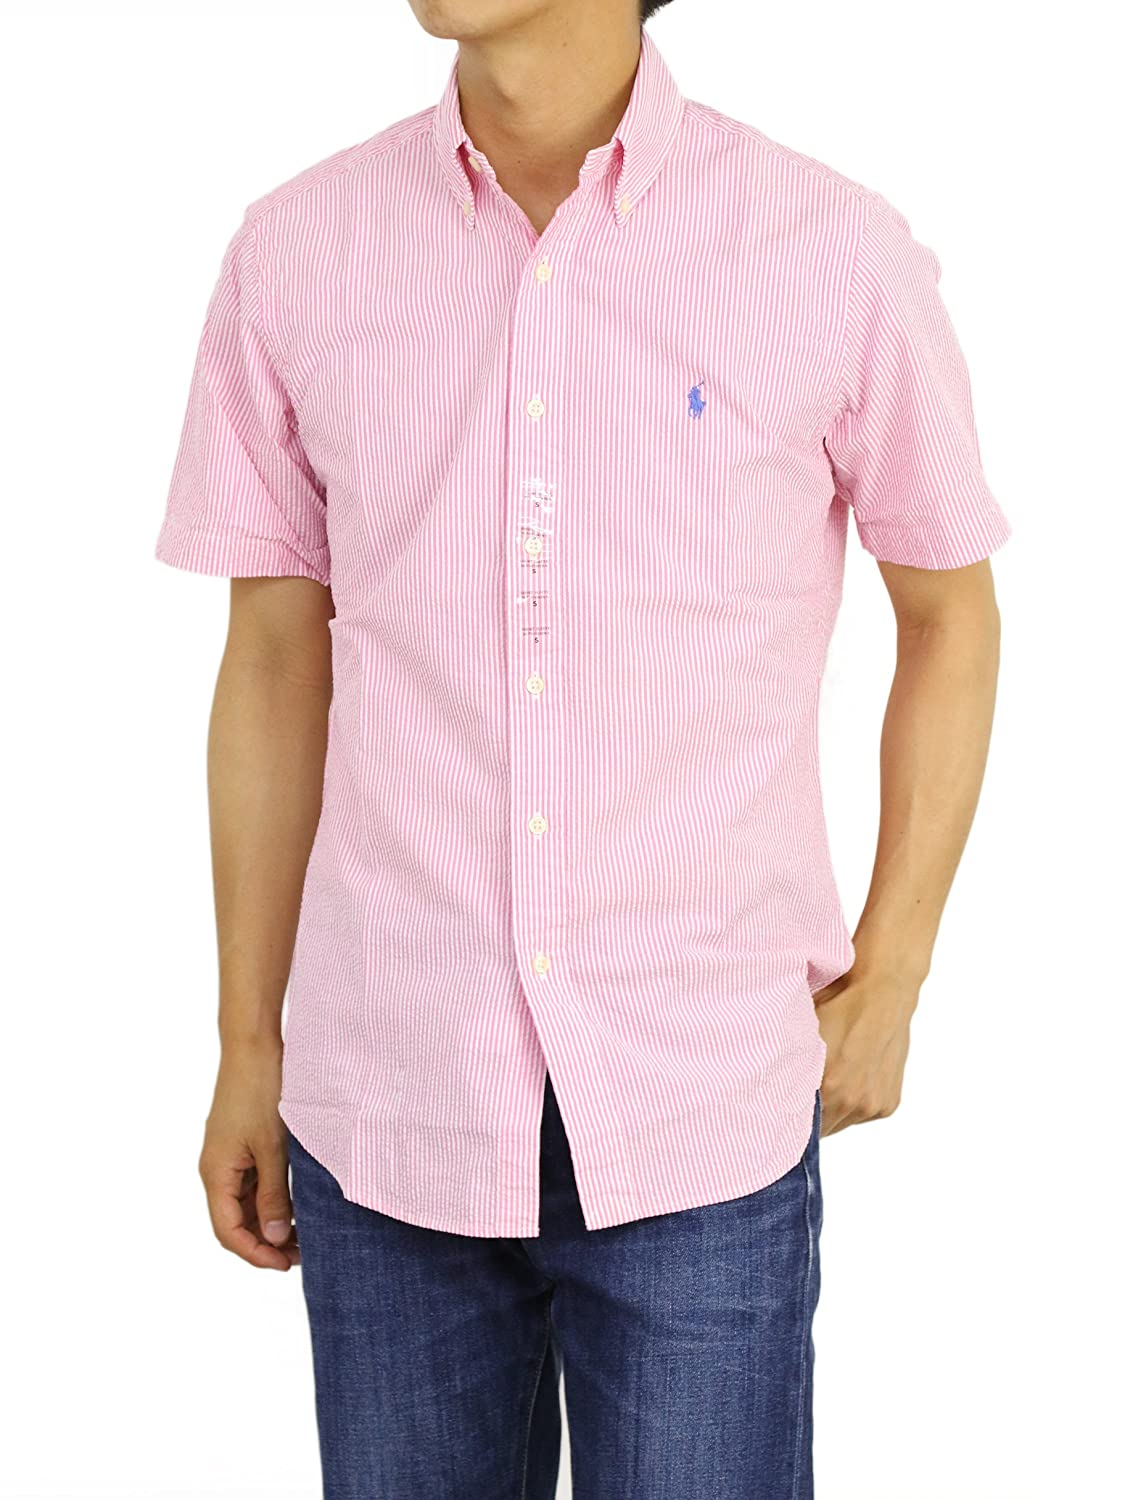 Polo Ralph Lauren Mens Short Sleeve Seersucker Sport Shirt (Bright Pink de9d116c5268